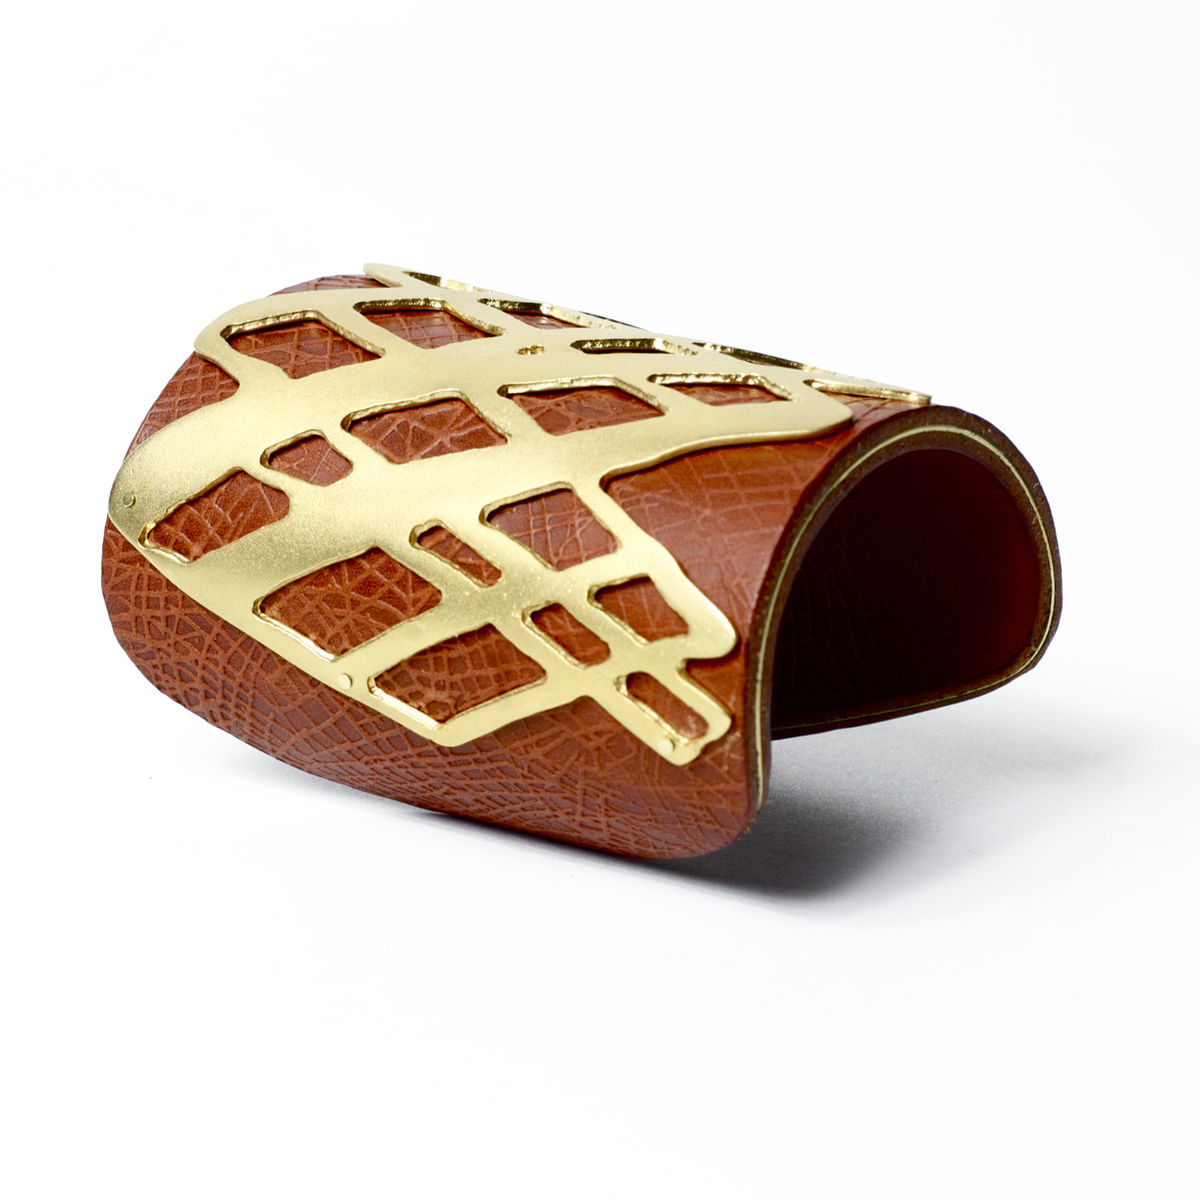 Tan 'Skin' Cuff Embossed Leather with Gold line overlay - Sara Gunn - product images  of